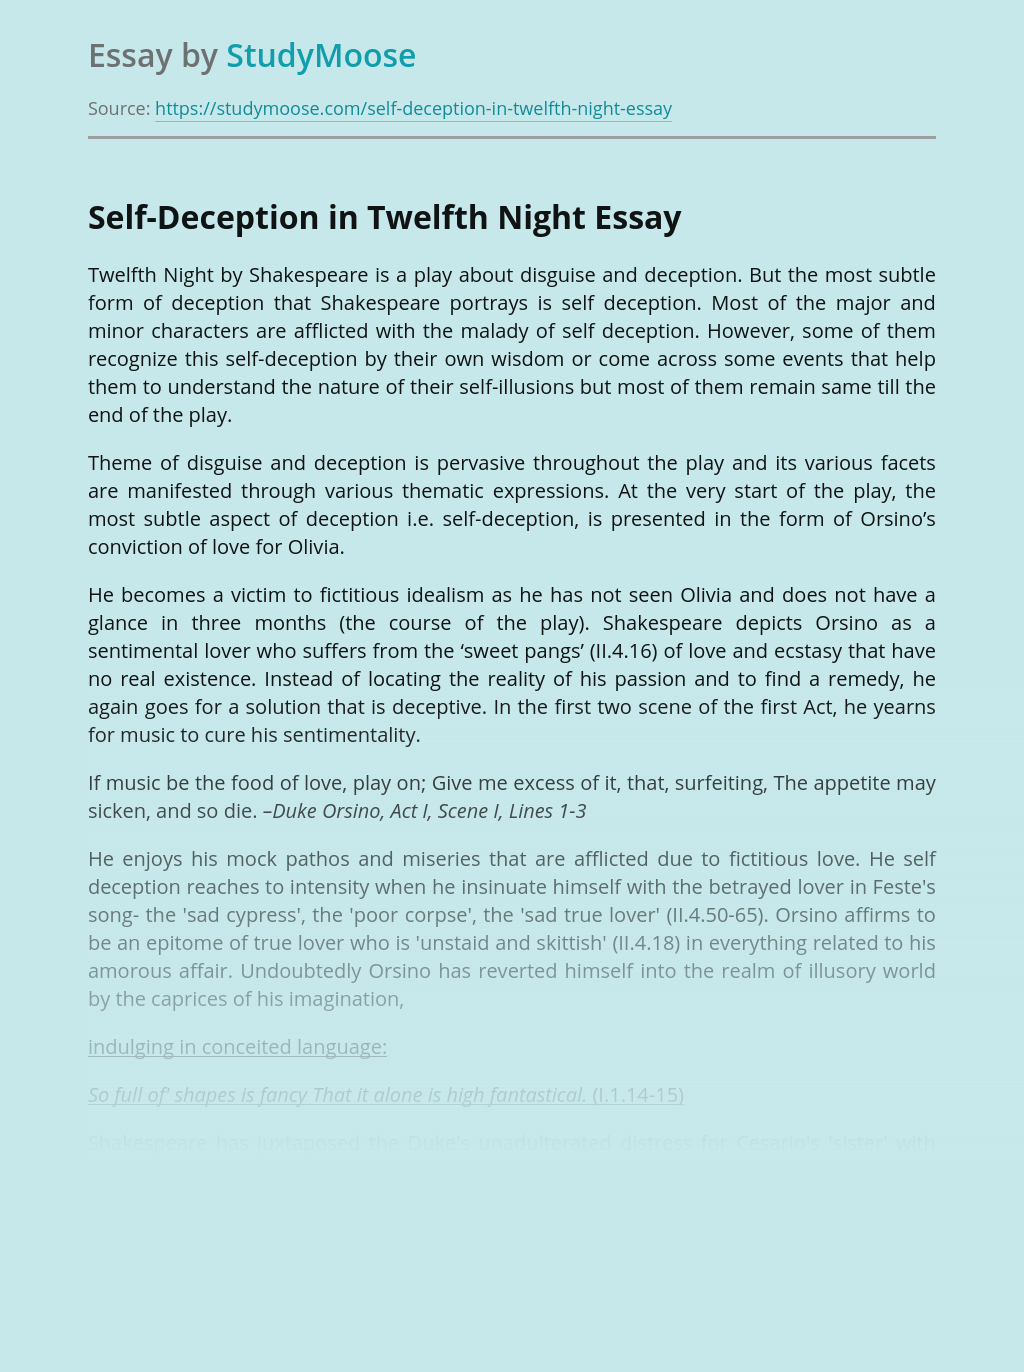 Self-Deception in Twelfth Night